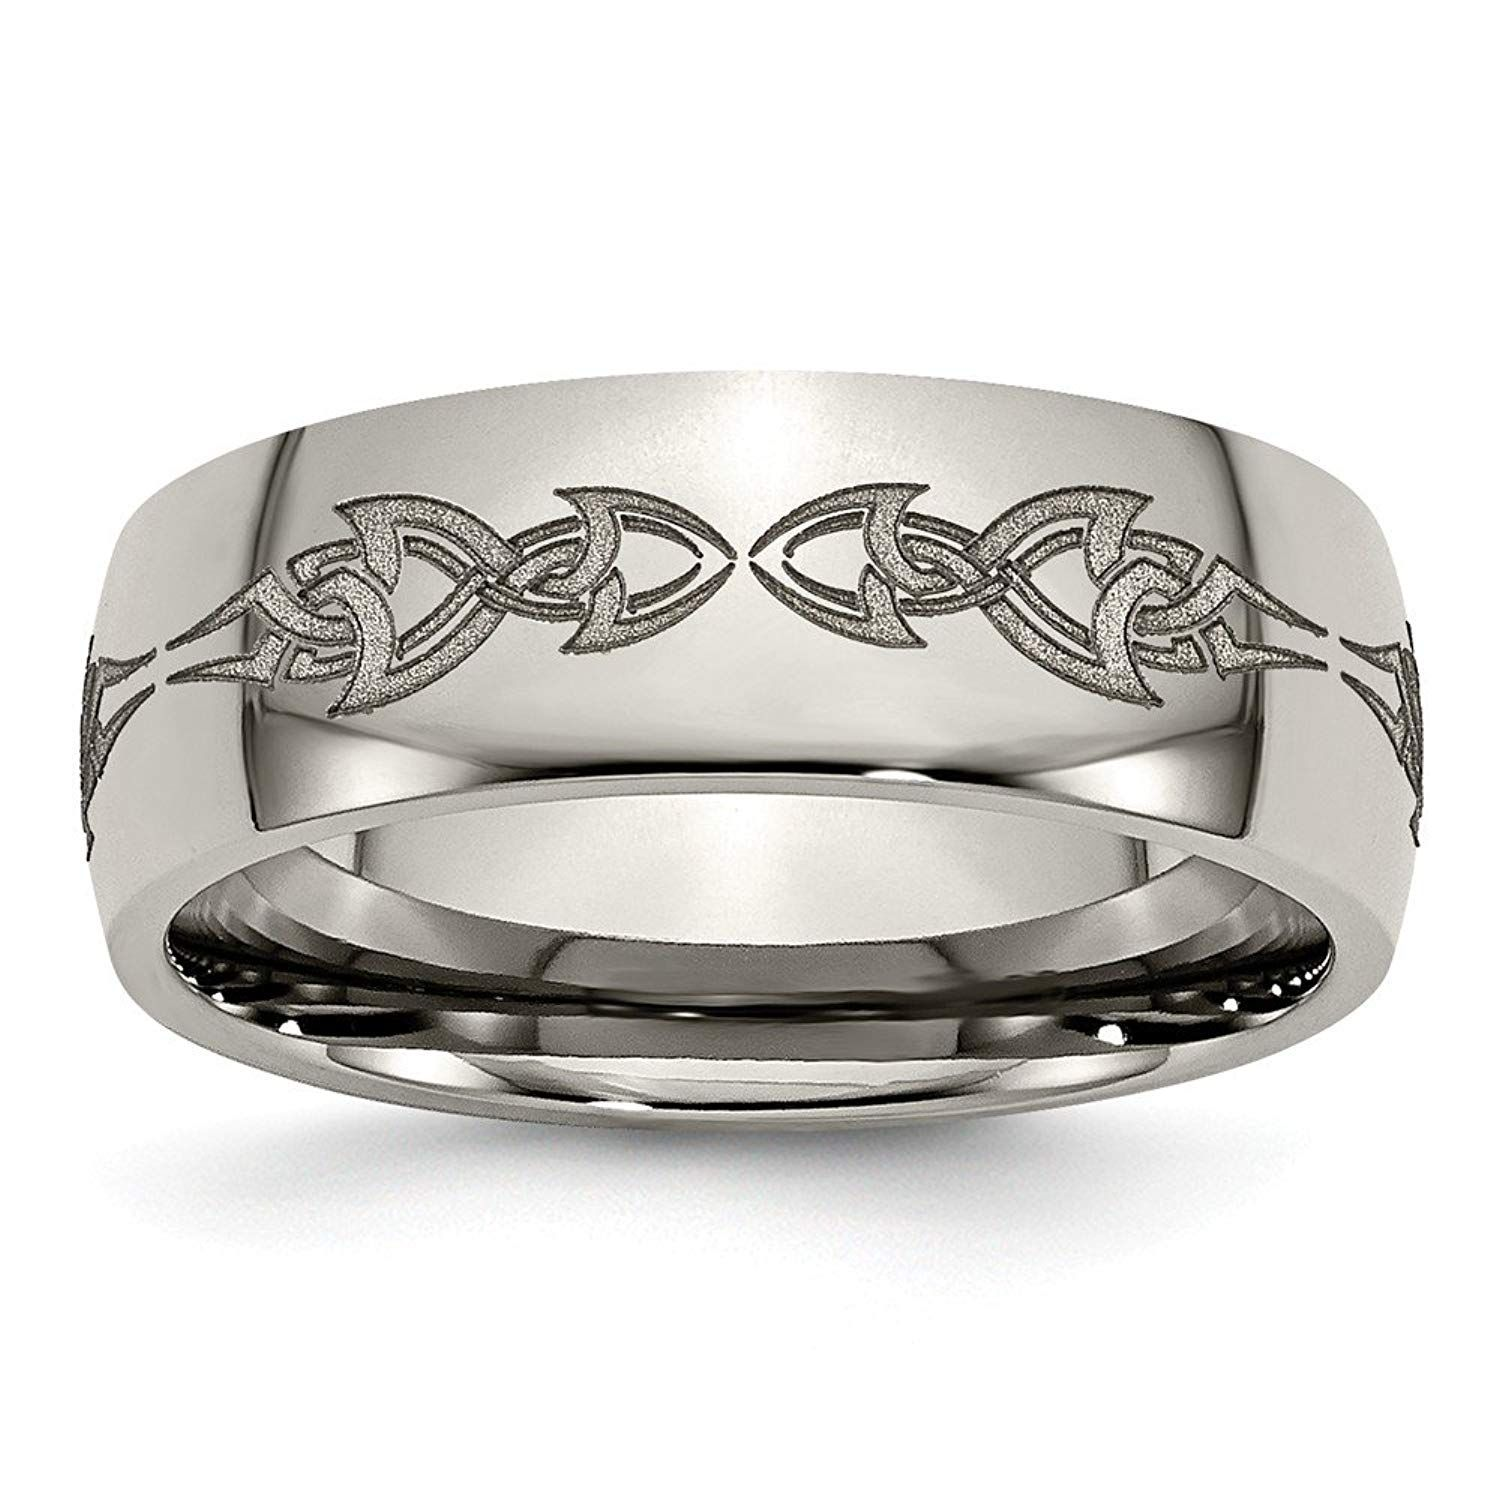 Top 10 Jewelry Gift Titanium 8mm Polished Band ** We do